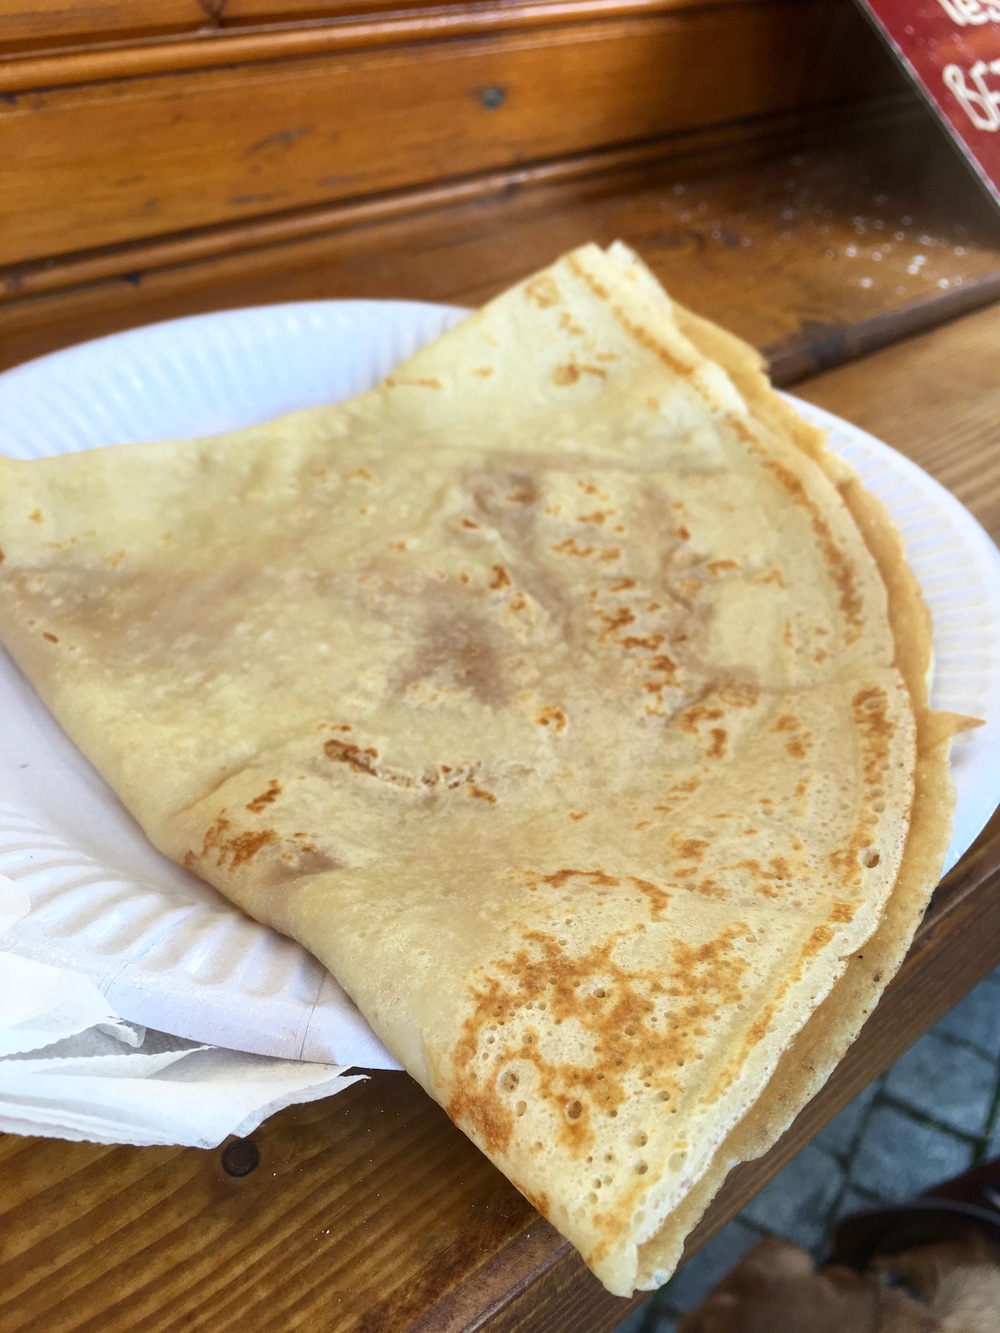 Crêpe with Grand Marnier and sugar